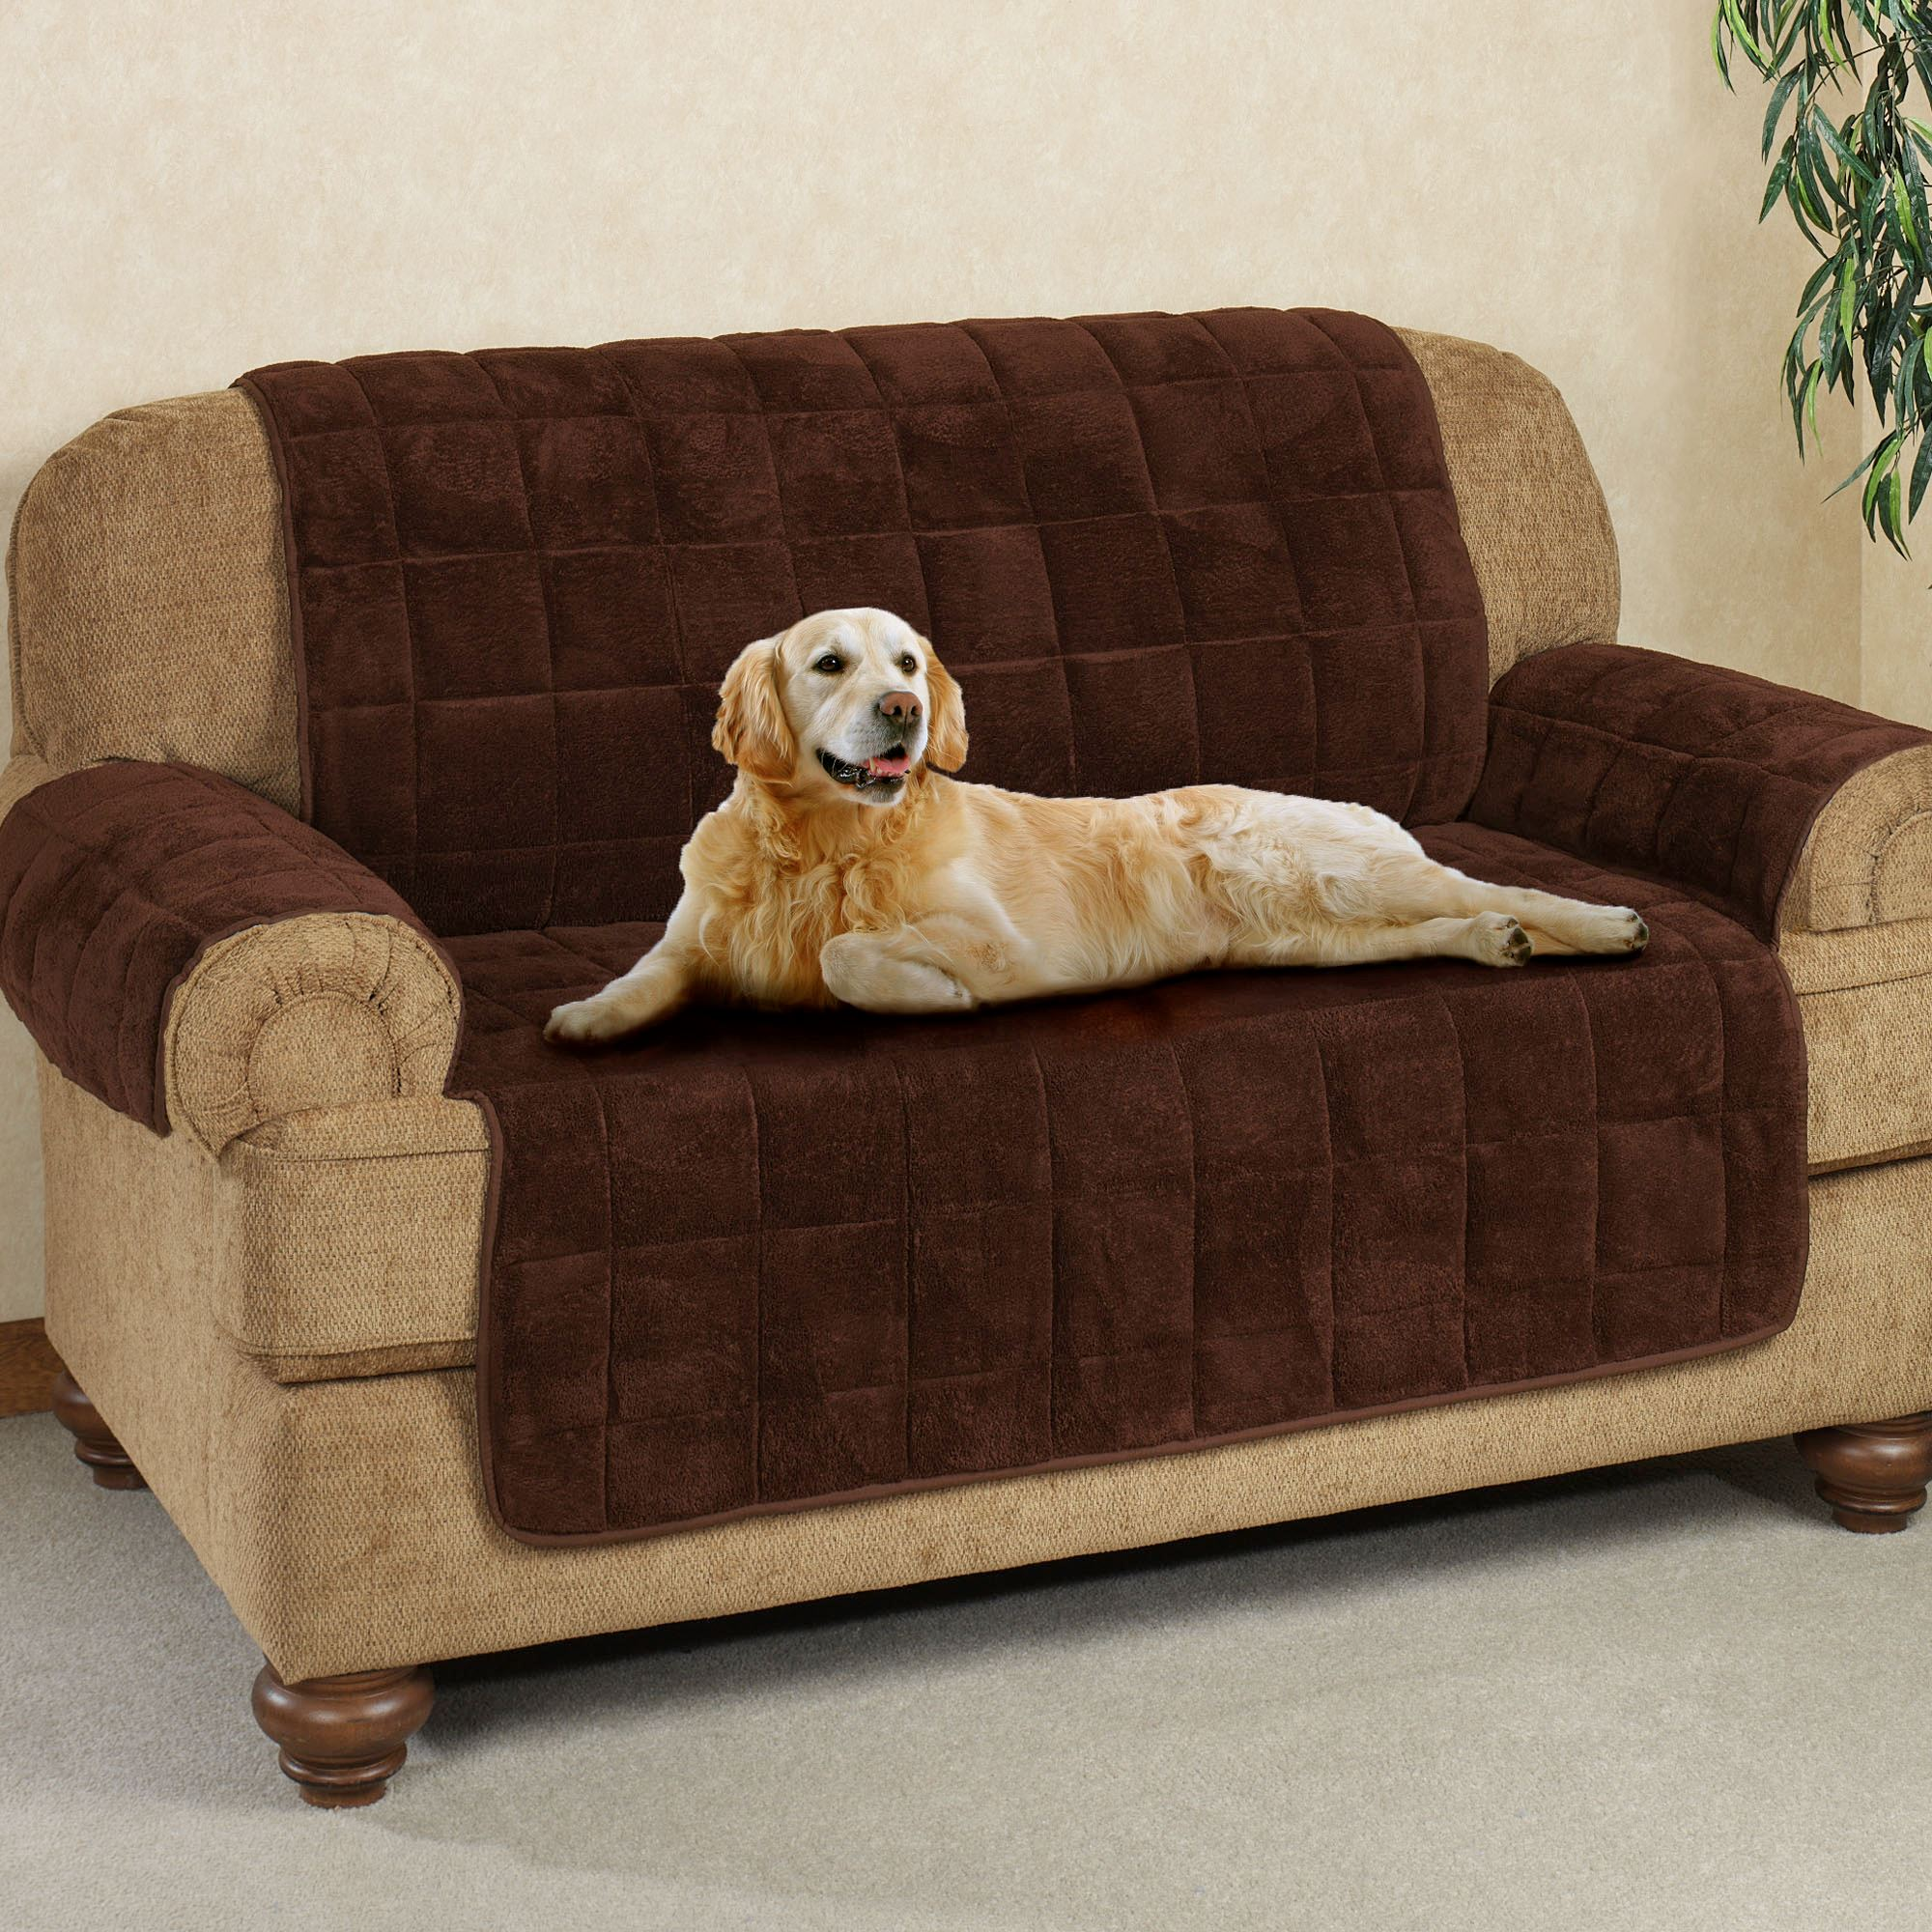 couch cover microplush pet furniture sofa cover sofa AEHPXNL